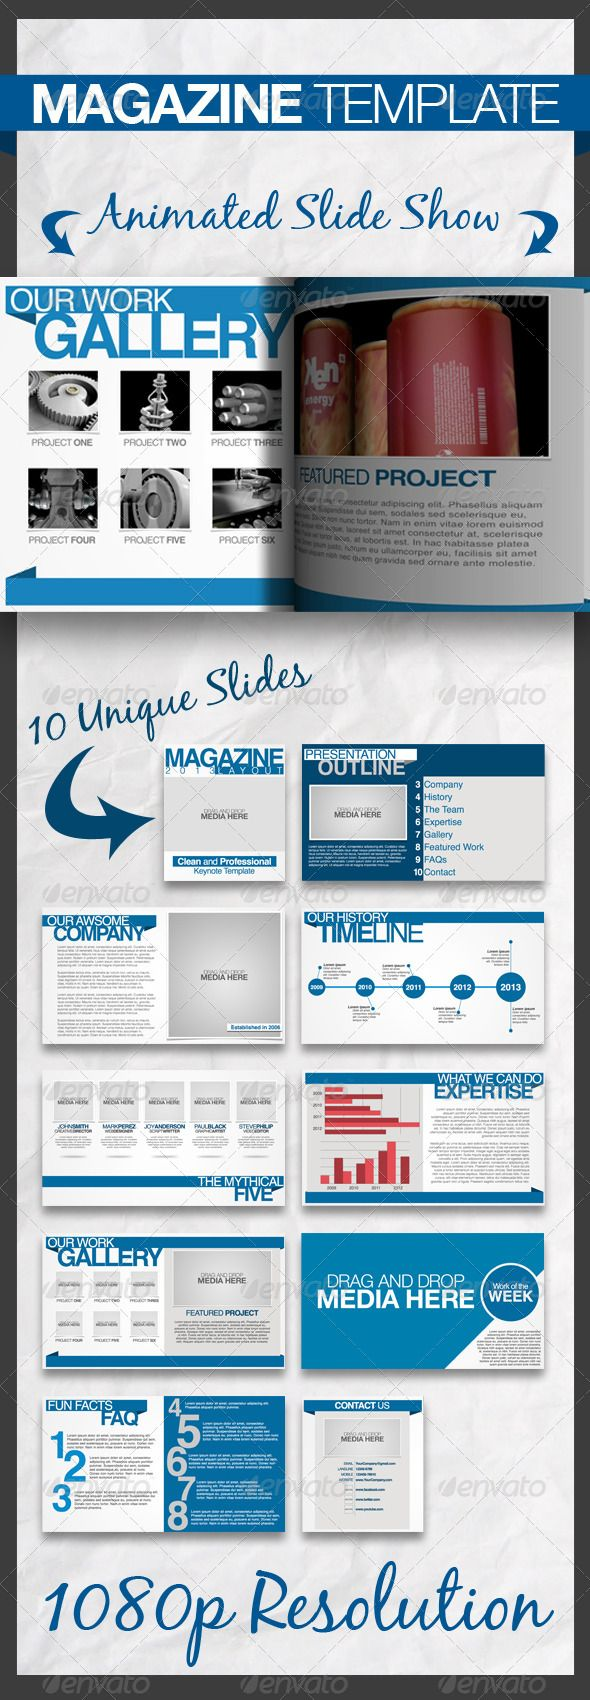 Magazine Keynote Presentation Template